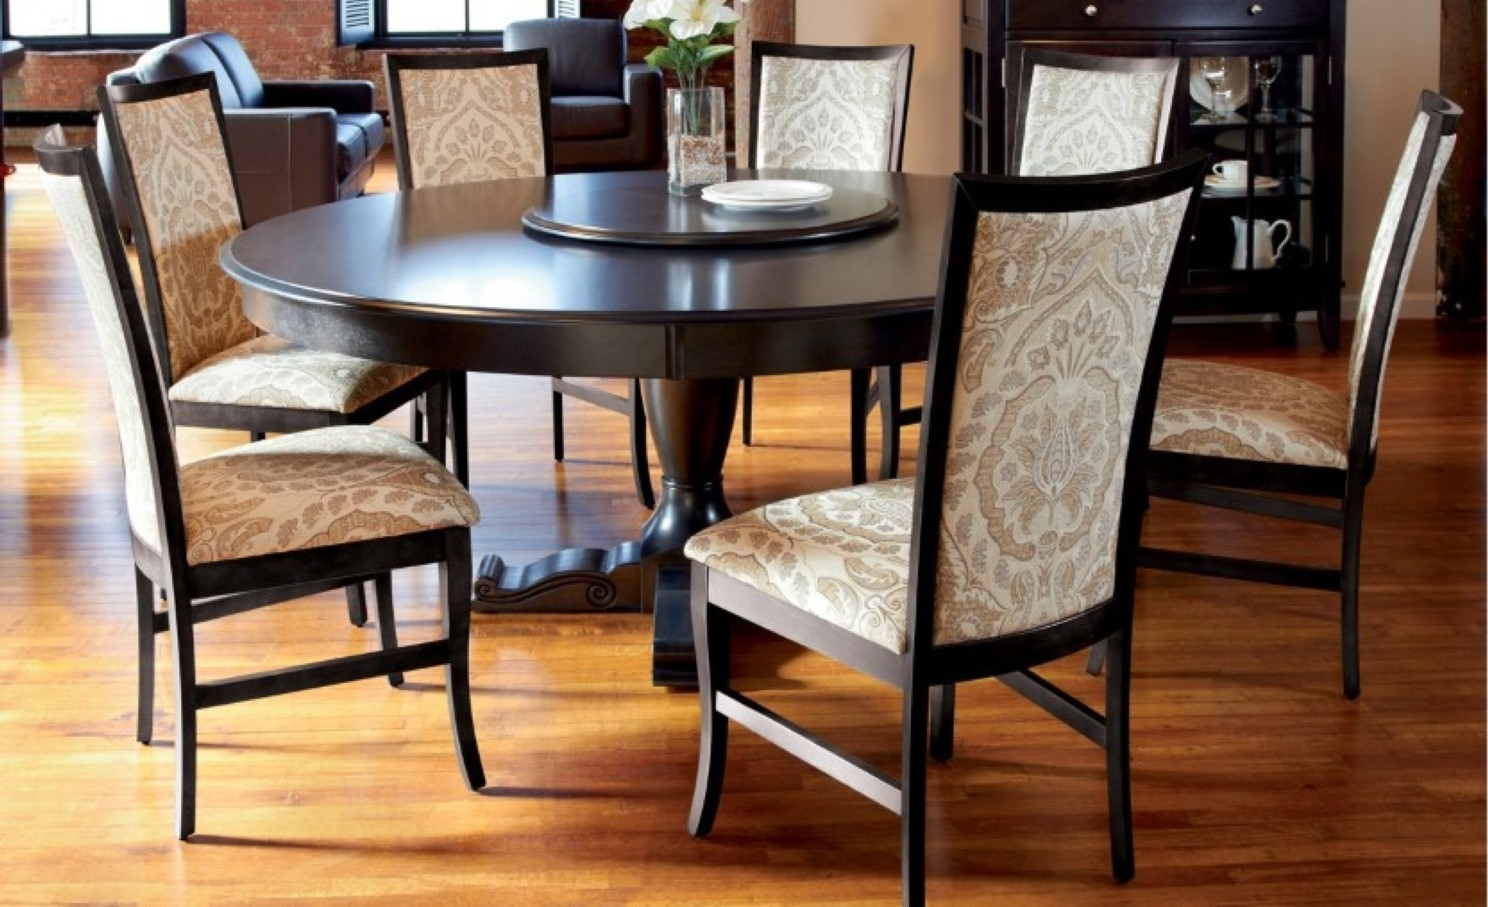 Dining Room Large Solid Wood Dining Room Table Dining Chairs For Within Widely Used Oak And Glass Dining Tables And Chairs (View 5 of 25)